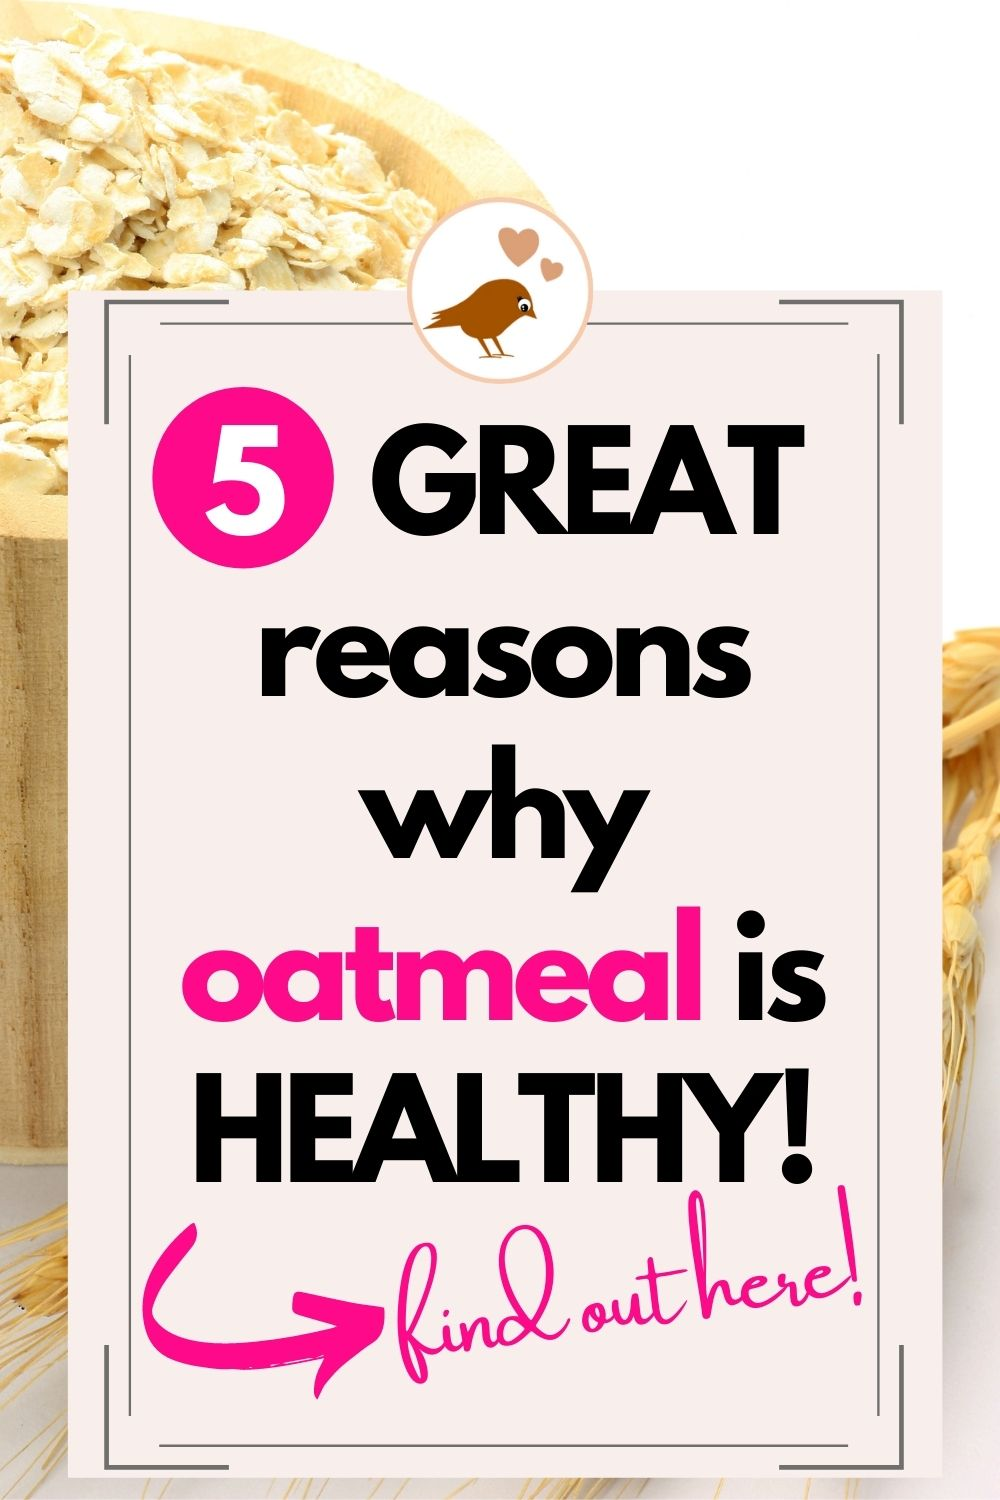 5 great reasons why oatmeal is healthy